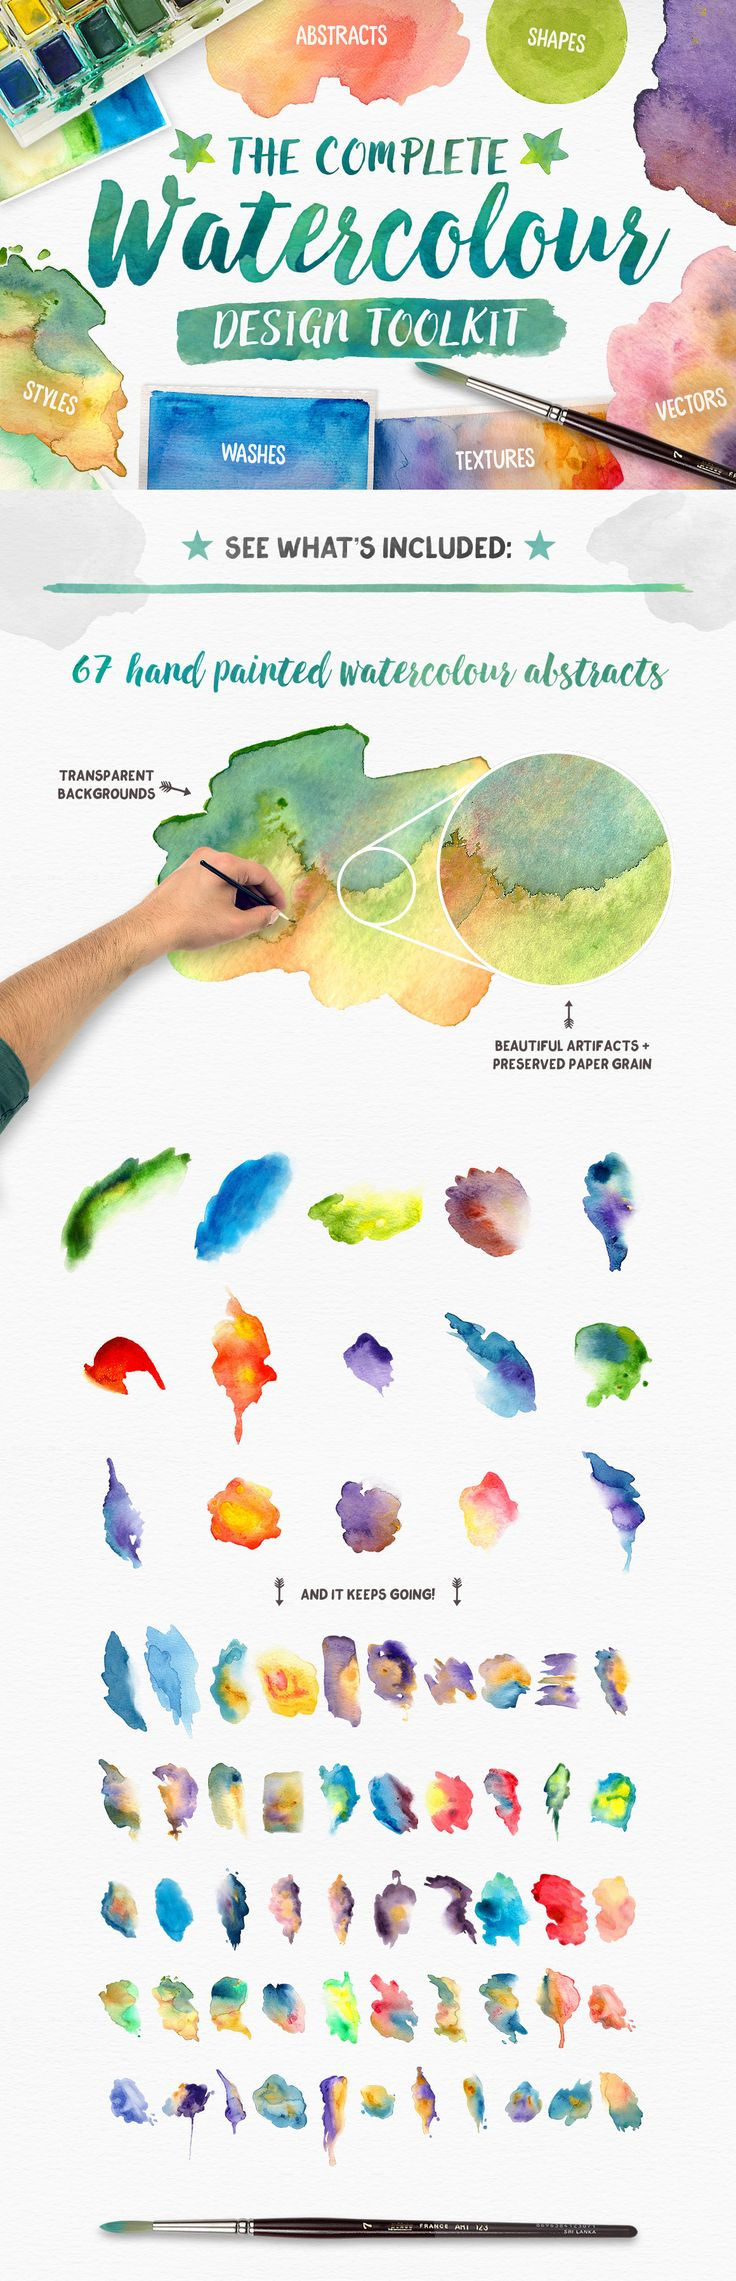 The Complete Watercolour Design Toolkit - https://www.designcuts.com/product/the-complete-watercolour-design-toolkit/